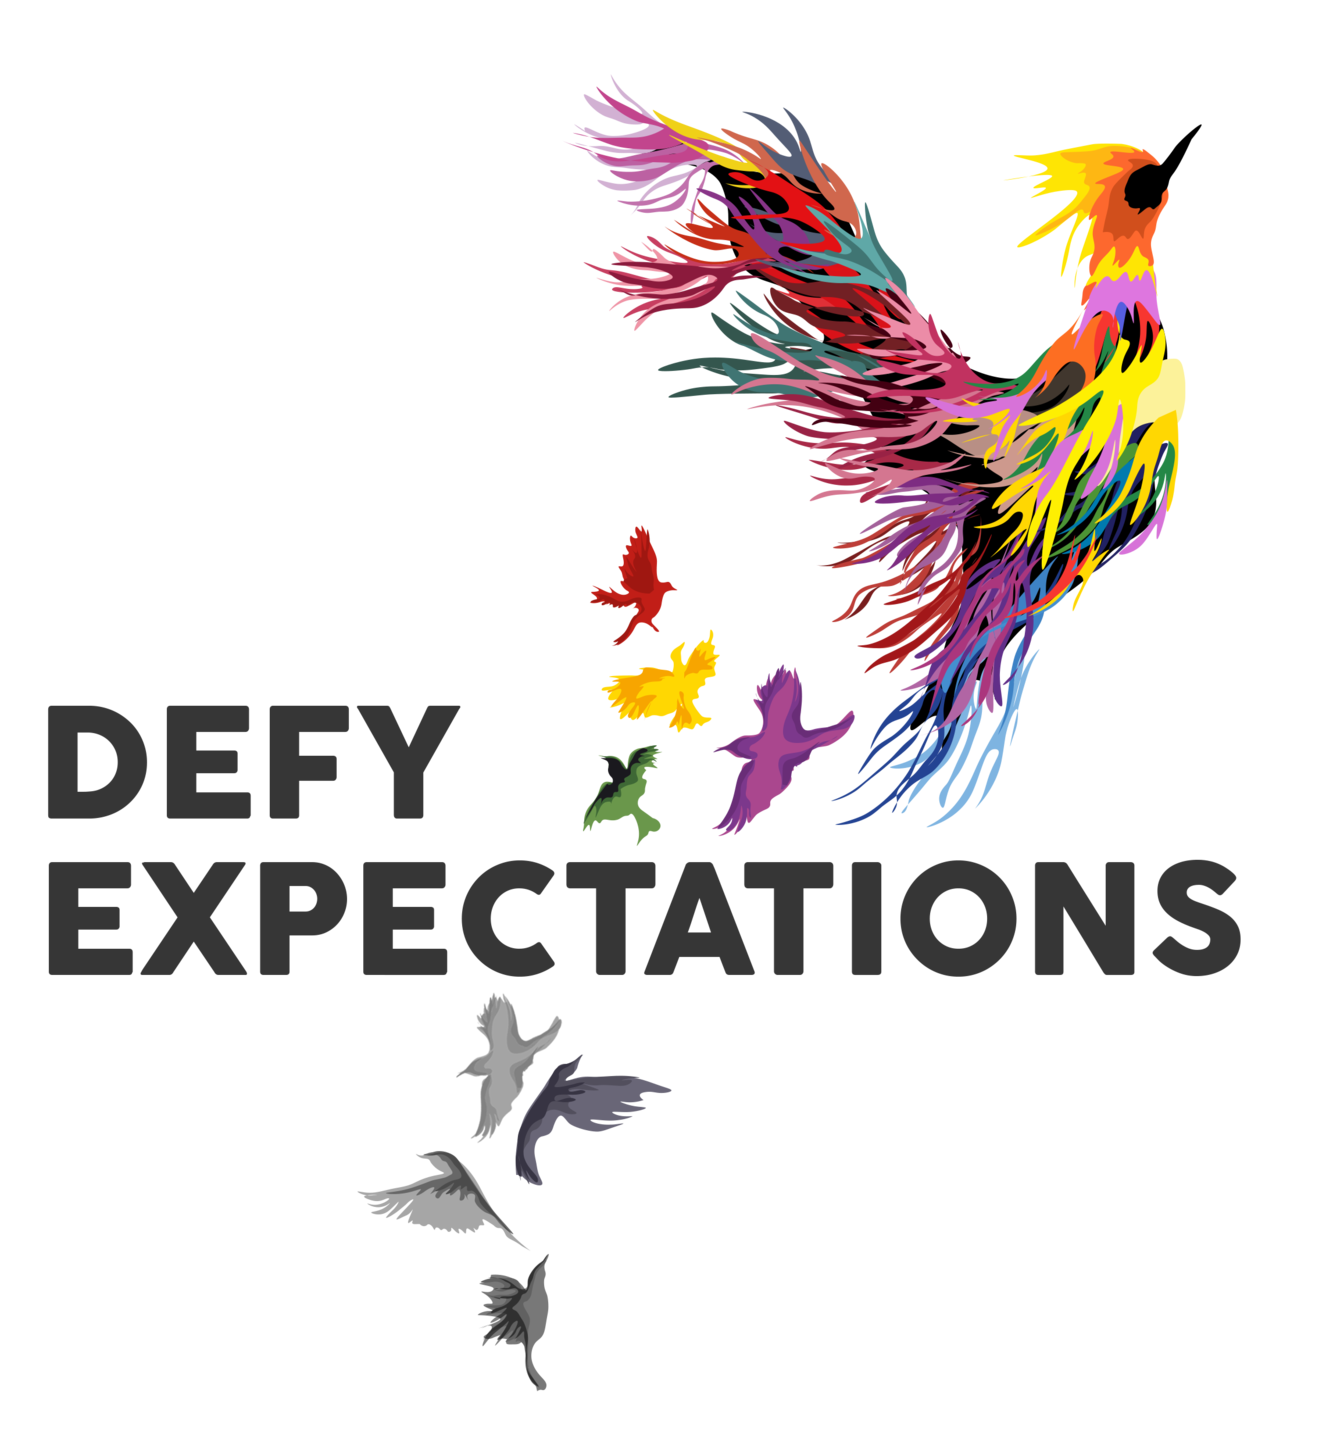 Defy Expectattions